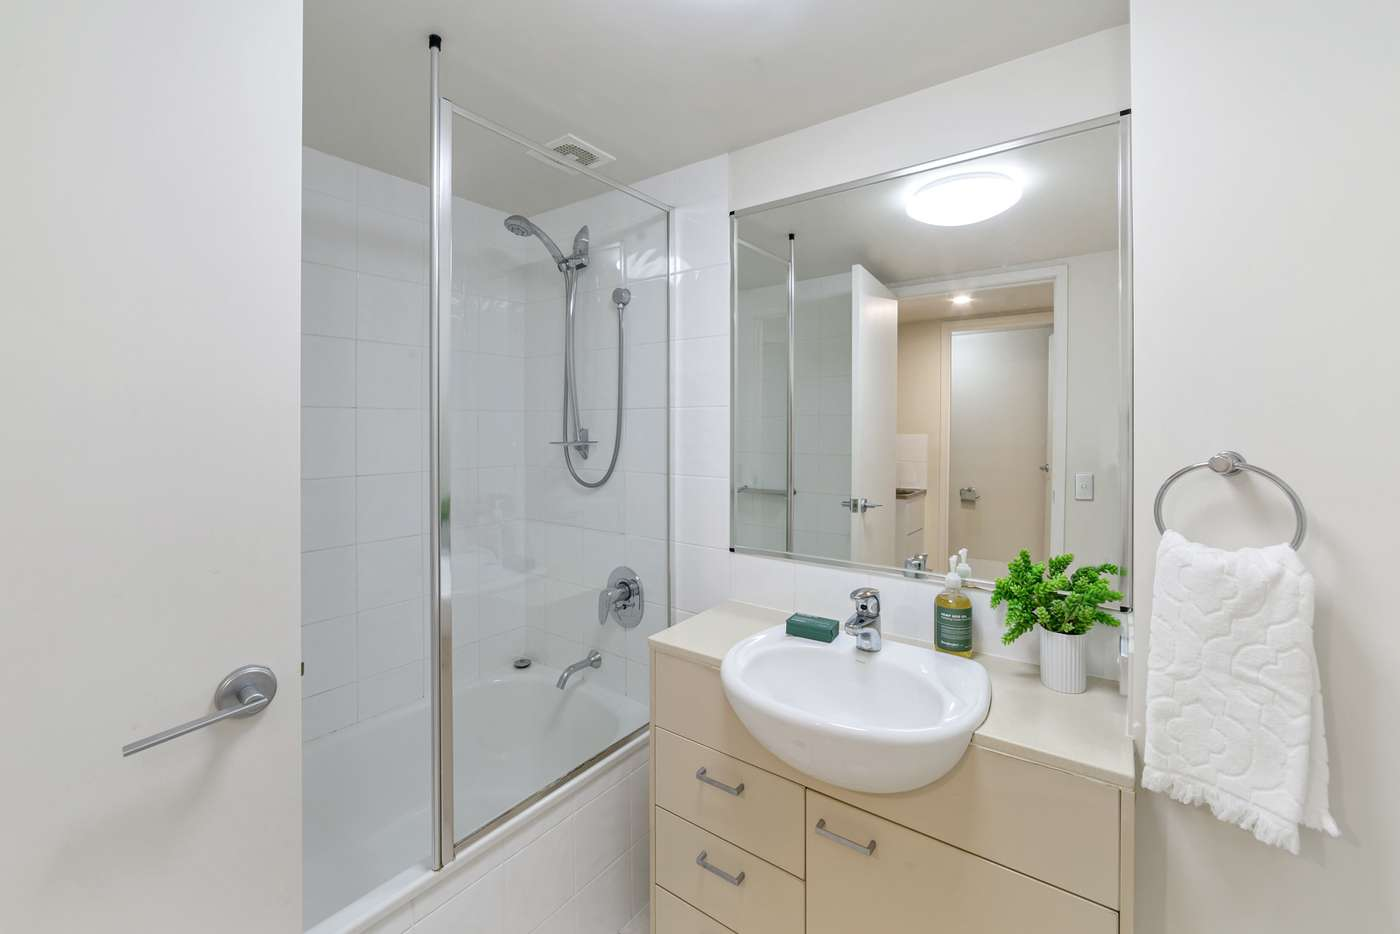 Sixth view of Homely unit listing, 404/21 Patrick Lane, Toowong QLD 4066